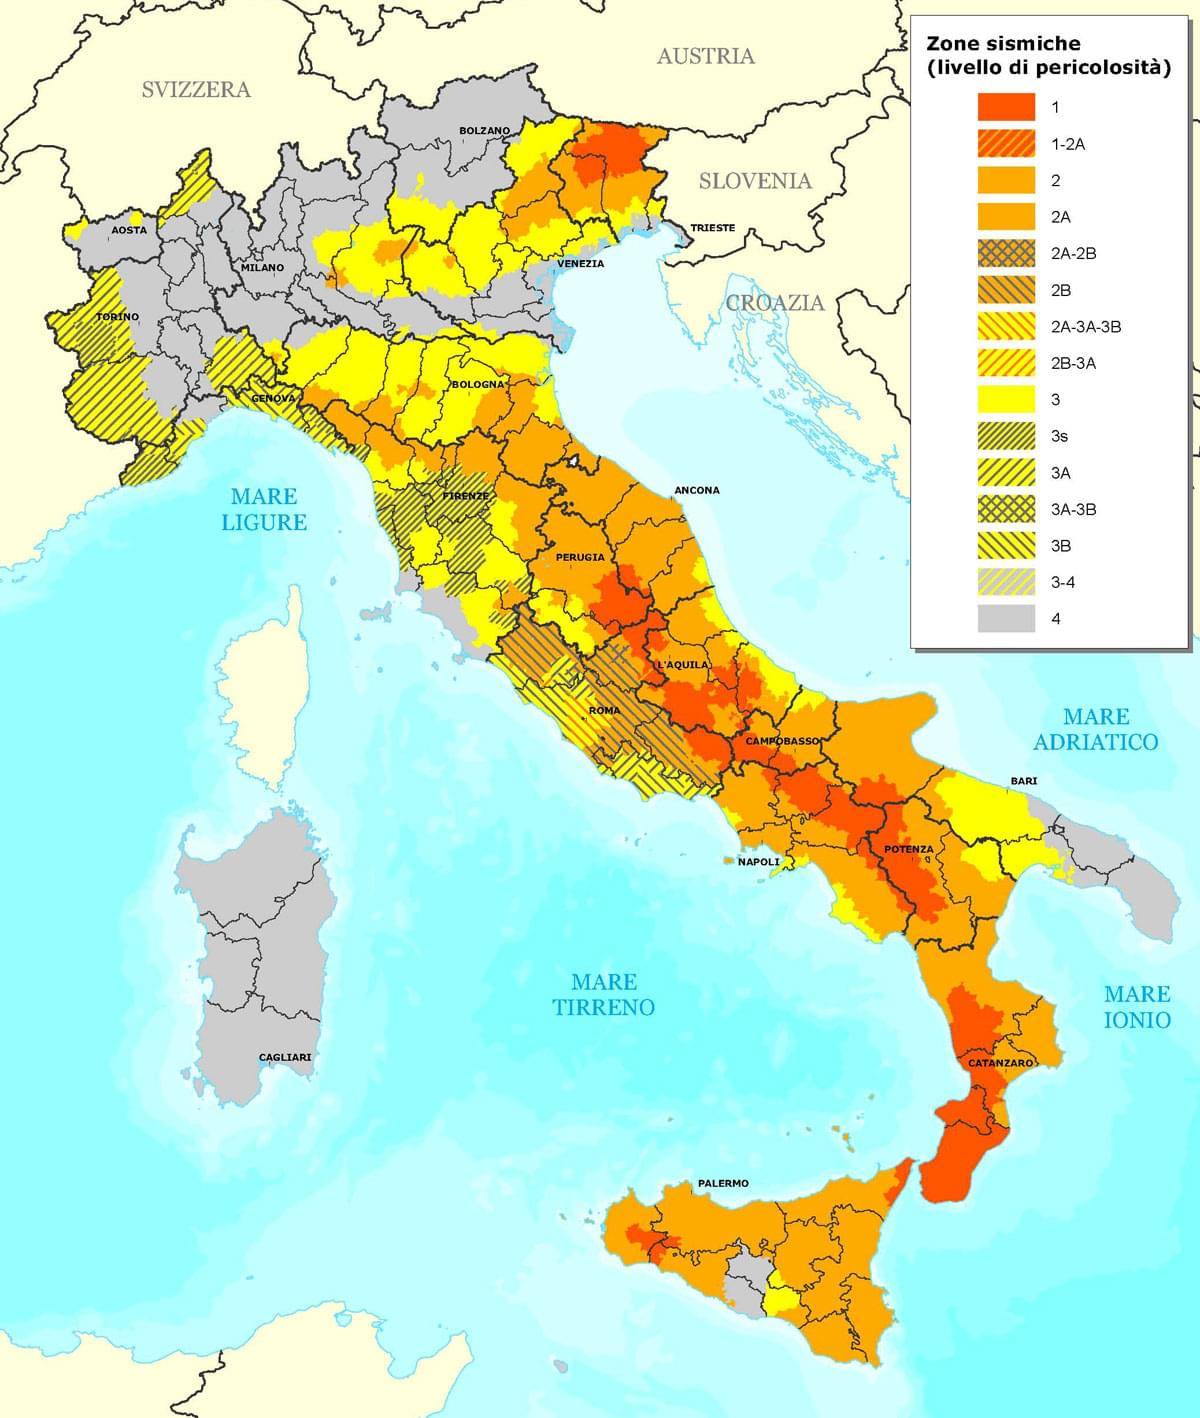 Italian earthquakes, earthquakes in italy, earth tremors italy, seismic activity italy, italian seismic zones